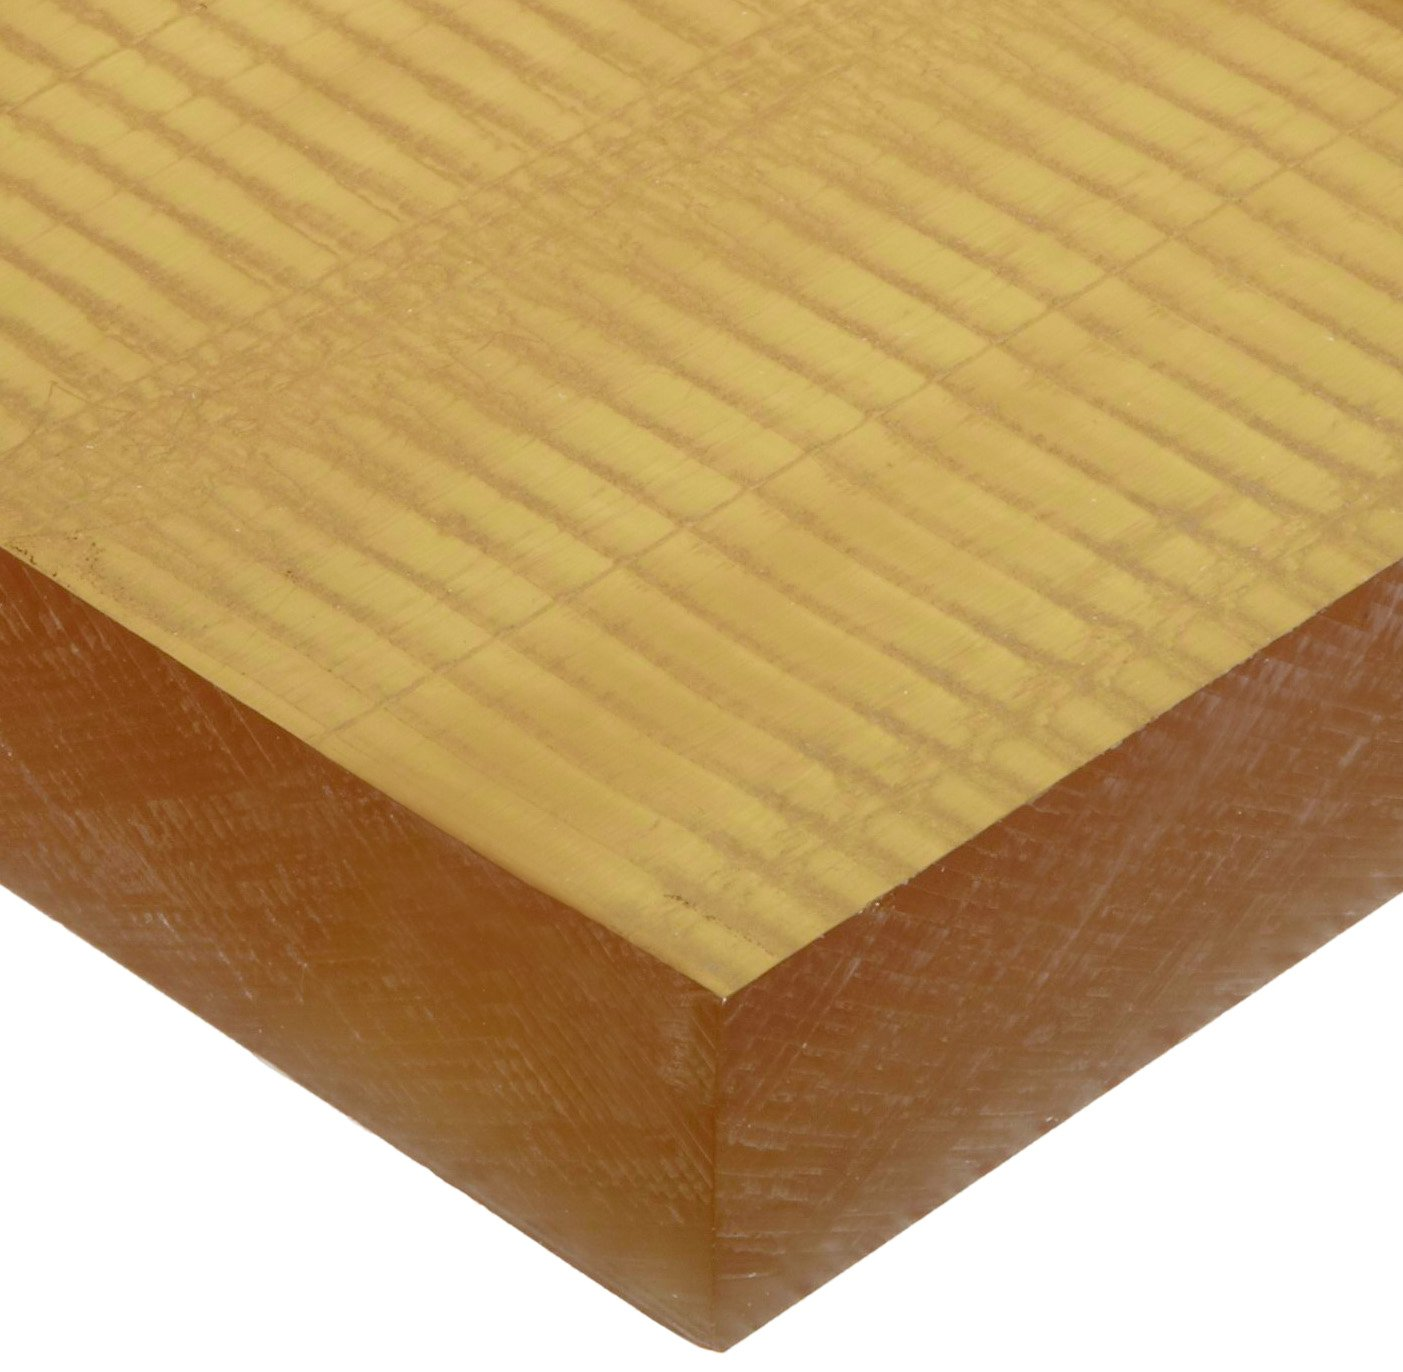 PSU ASTM D6394 3 Width Sheet 3 Length 1//2 Thickness 3 Width 3 Length Small Parts ZAM2966-B0013HQ5JE 1//2 Thickness Opaque Amber Standard Tolerance Polysulfone